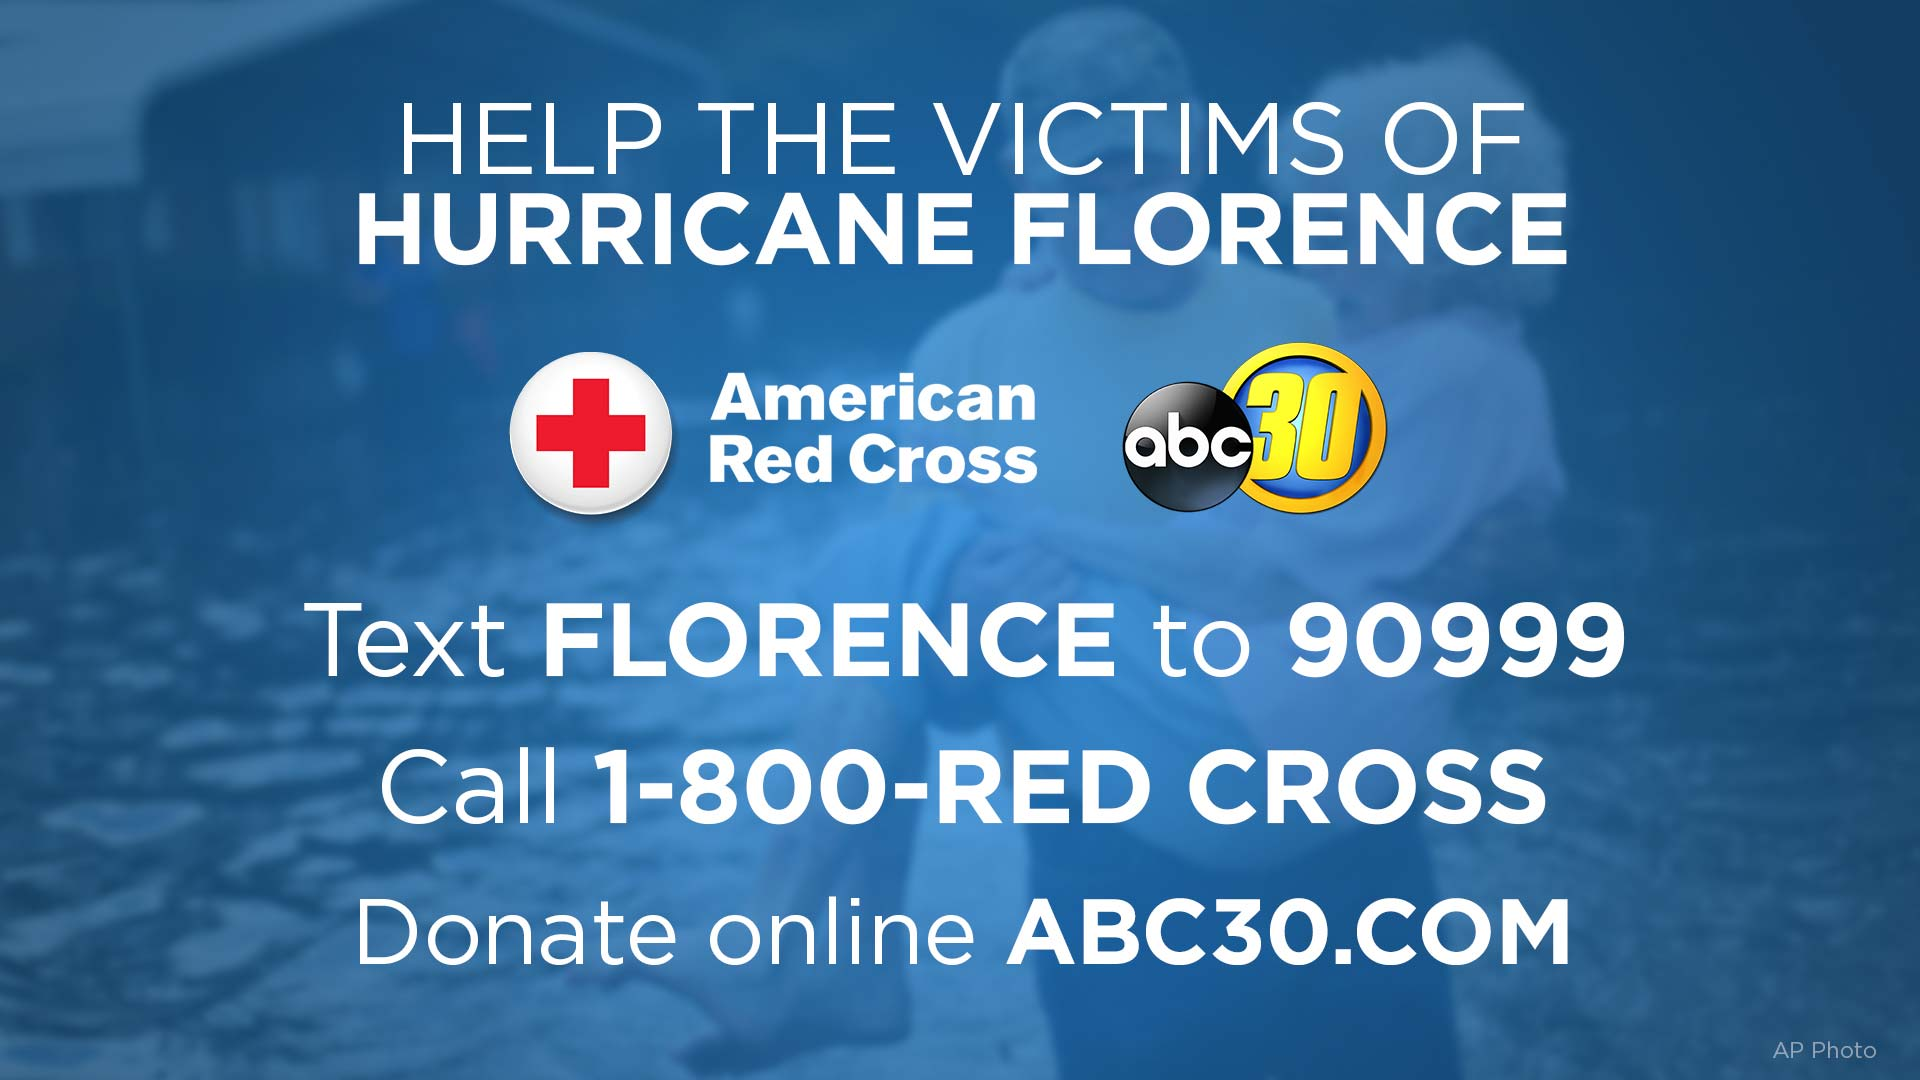 DONATE: Help the victims of Hurricane Florence